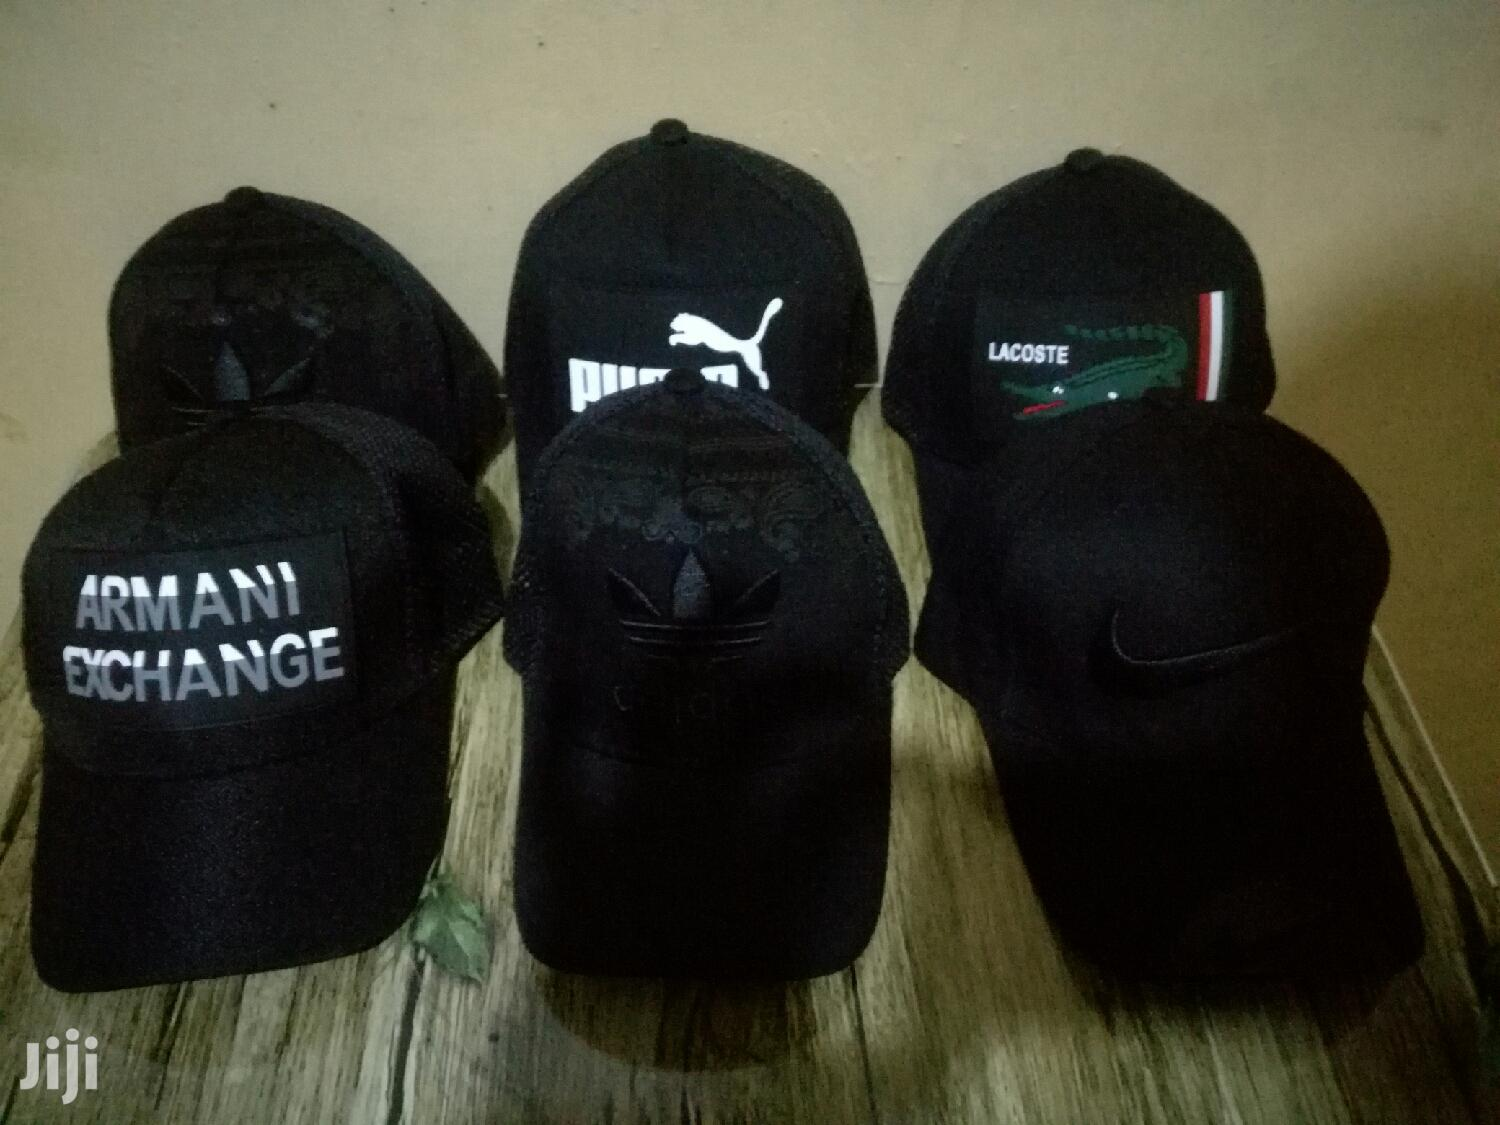 Archive: Sniper Caps and Baseball Caps